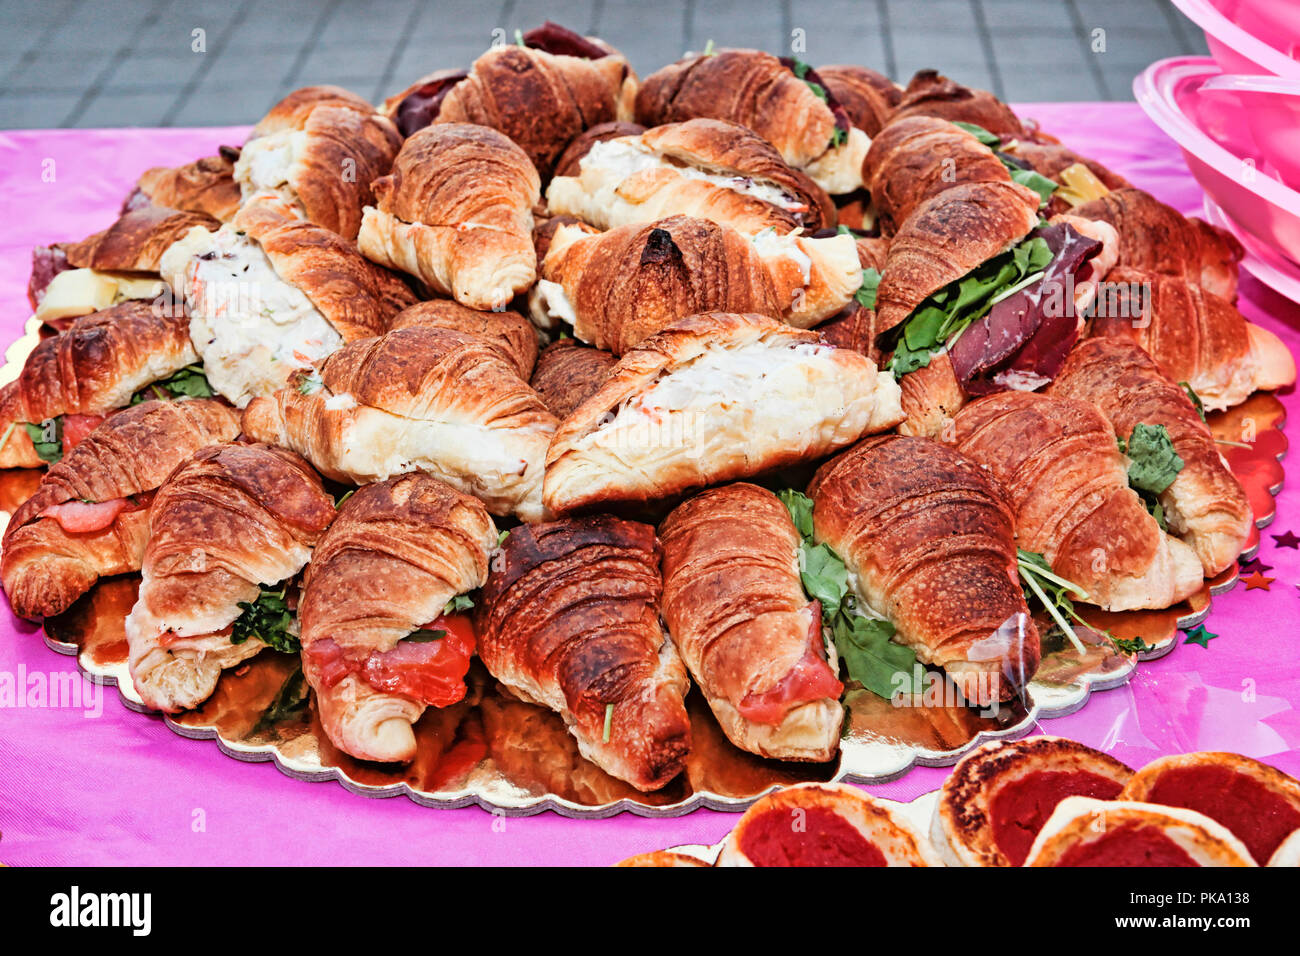 Serving dish with many stuffed salted croissants - selective focus - Stock Image